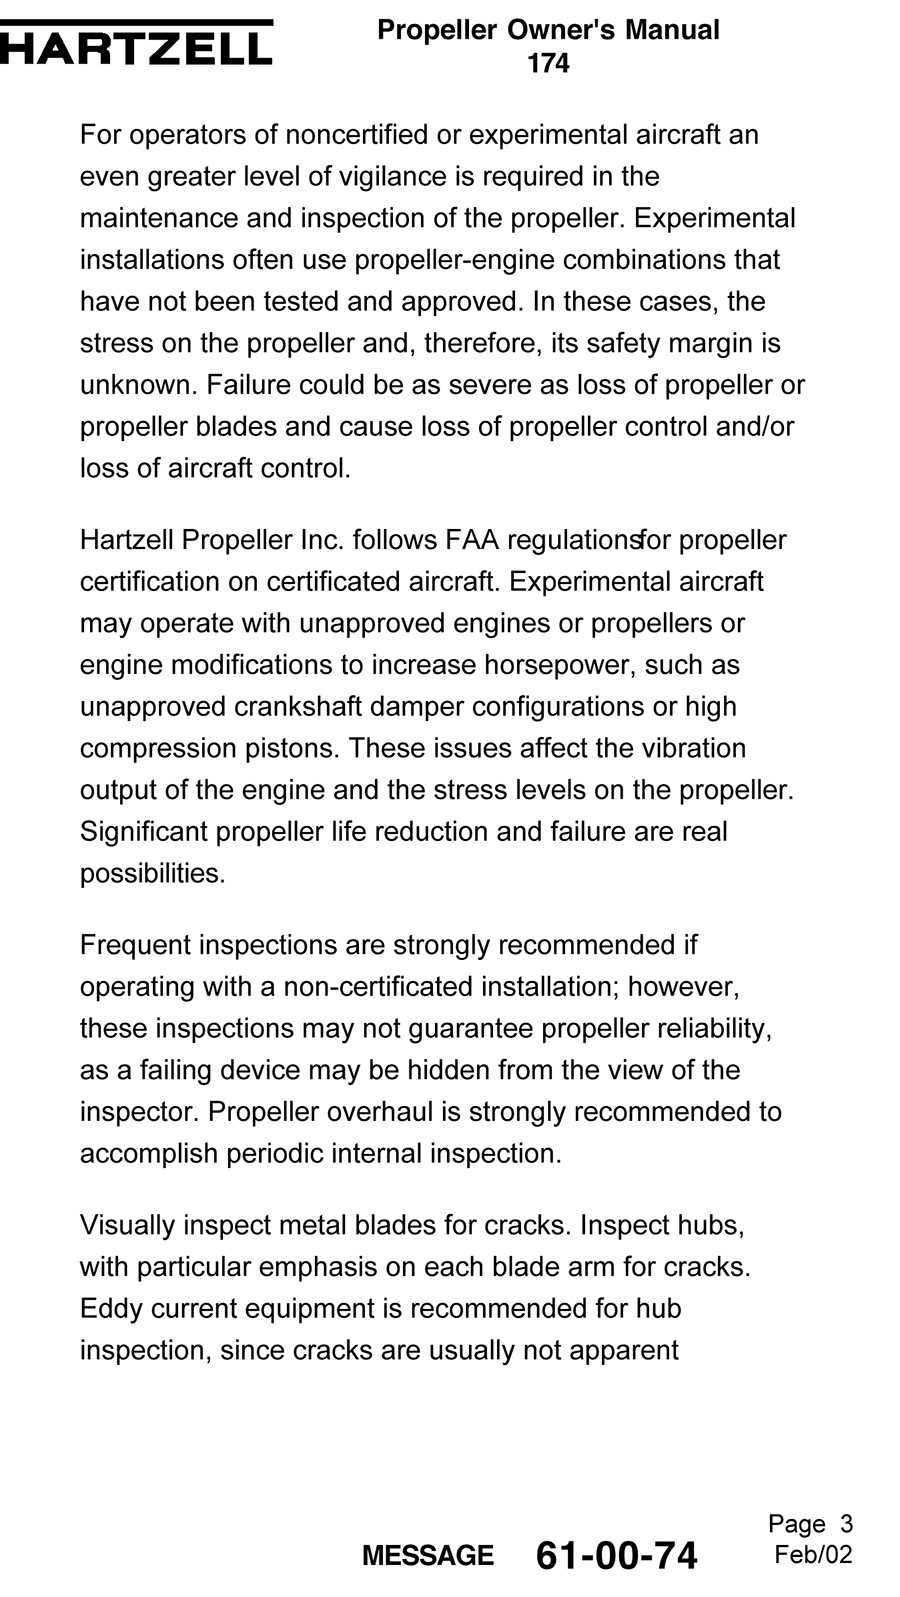 Hartzell Prop Manual 2010 page5